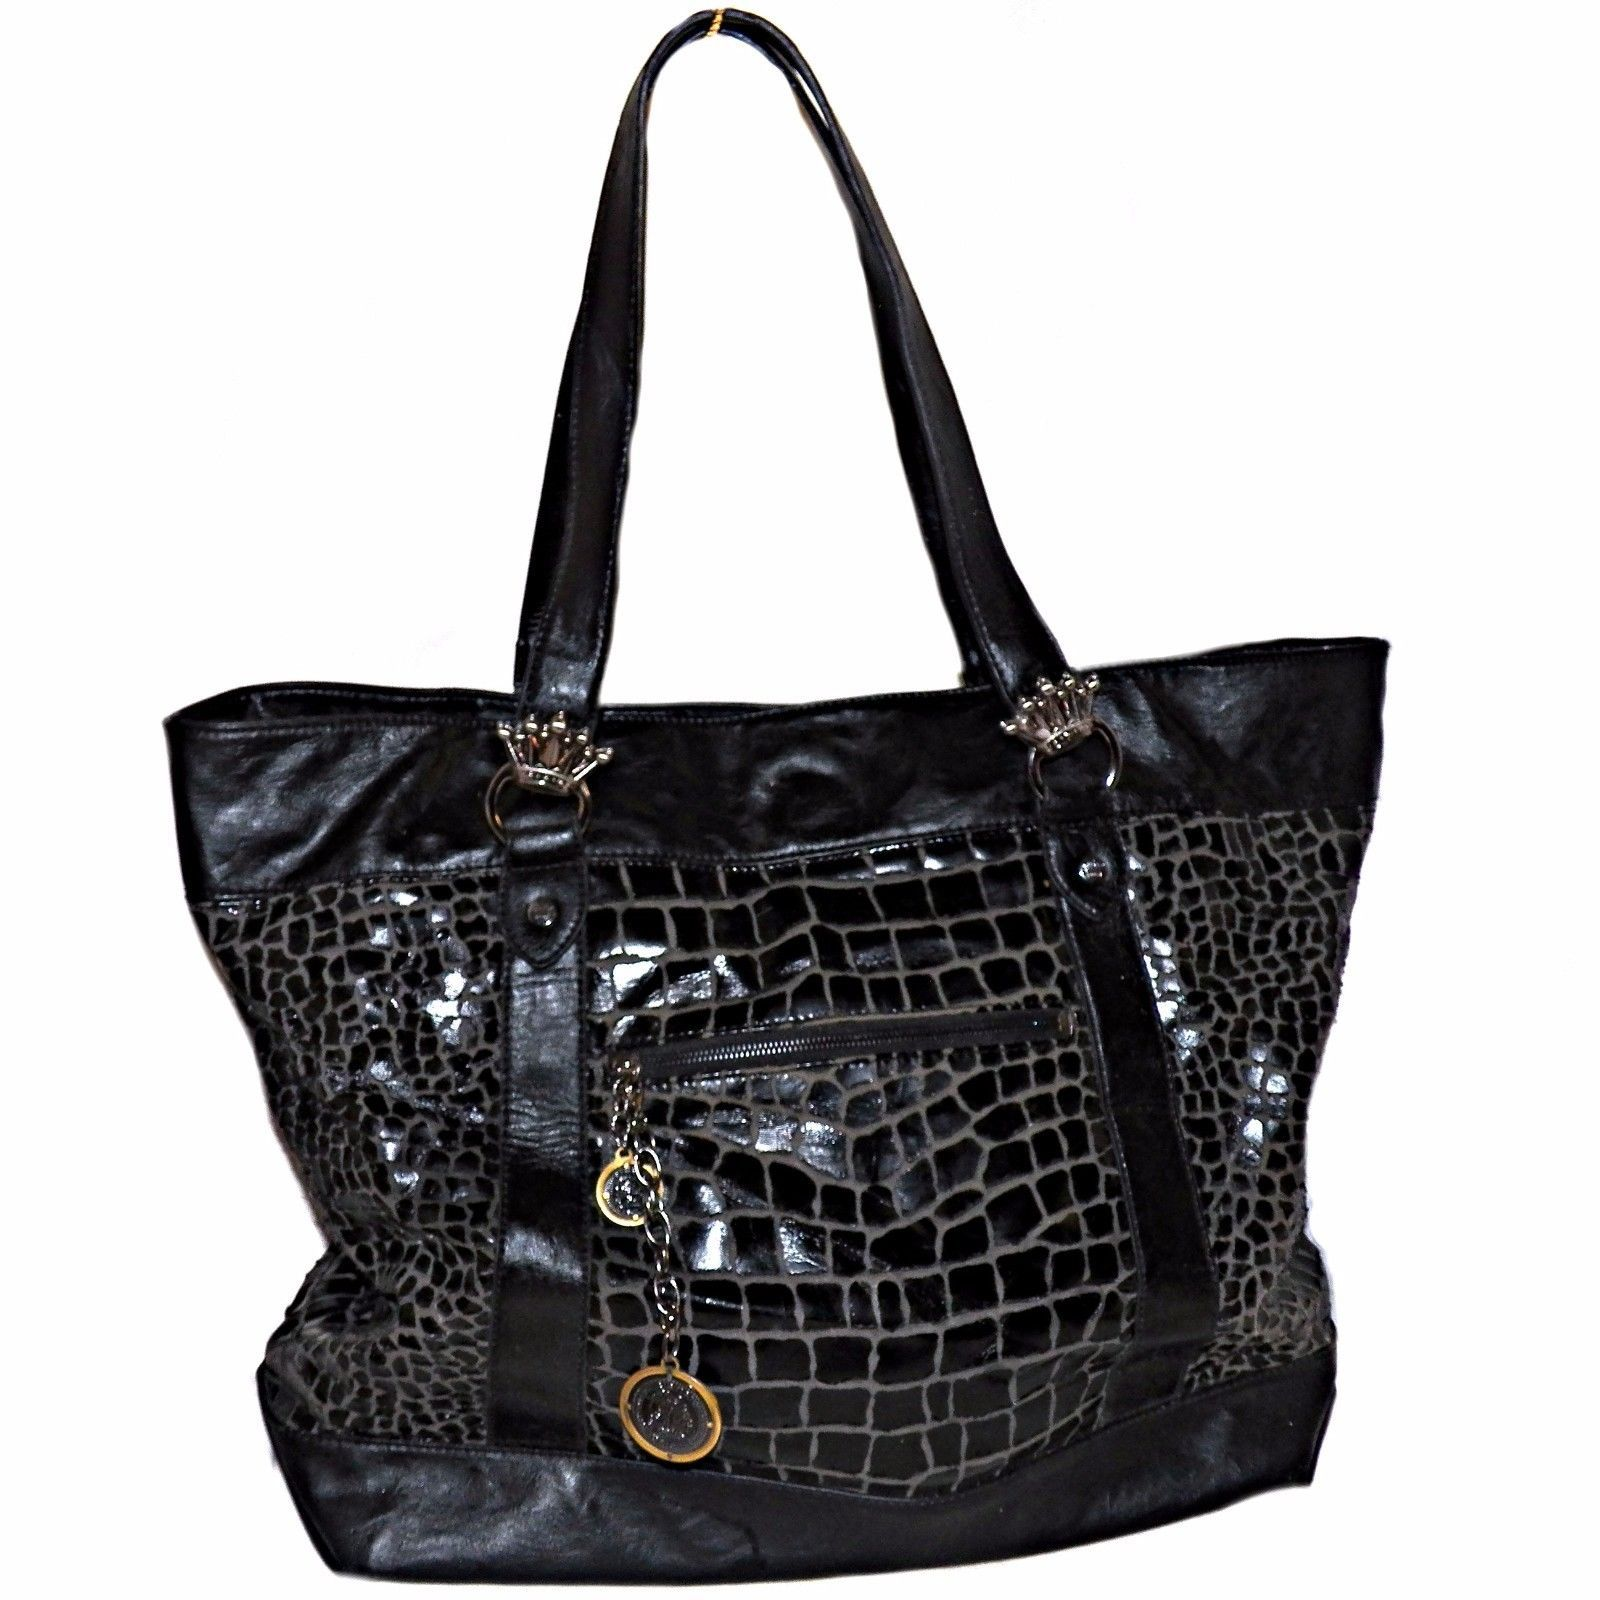 886eccfcd8df S l1600. S l1600. Previous. Christian Audigier Black Alligator Croc Print Vegan  Leather Shopper Tote Purse